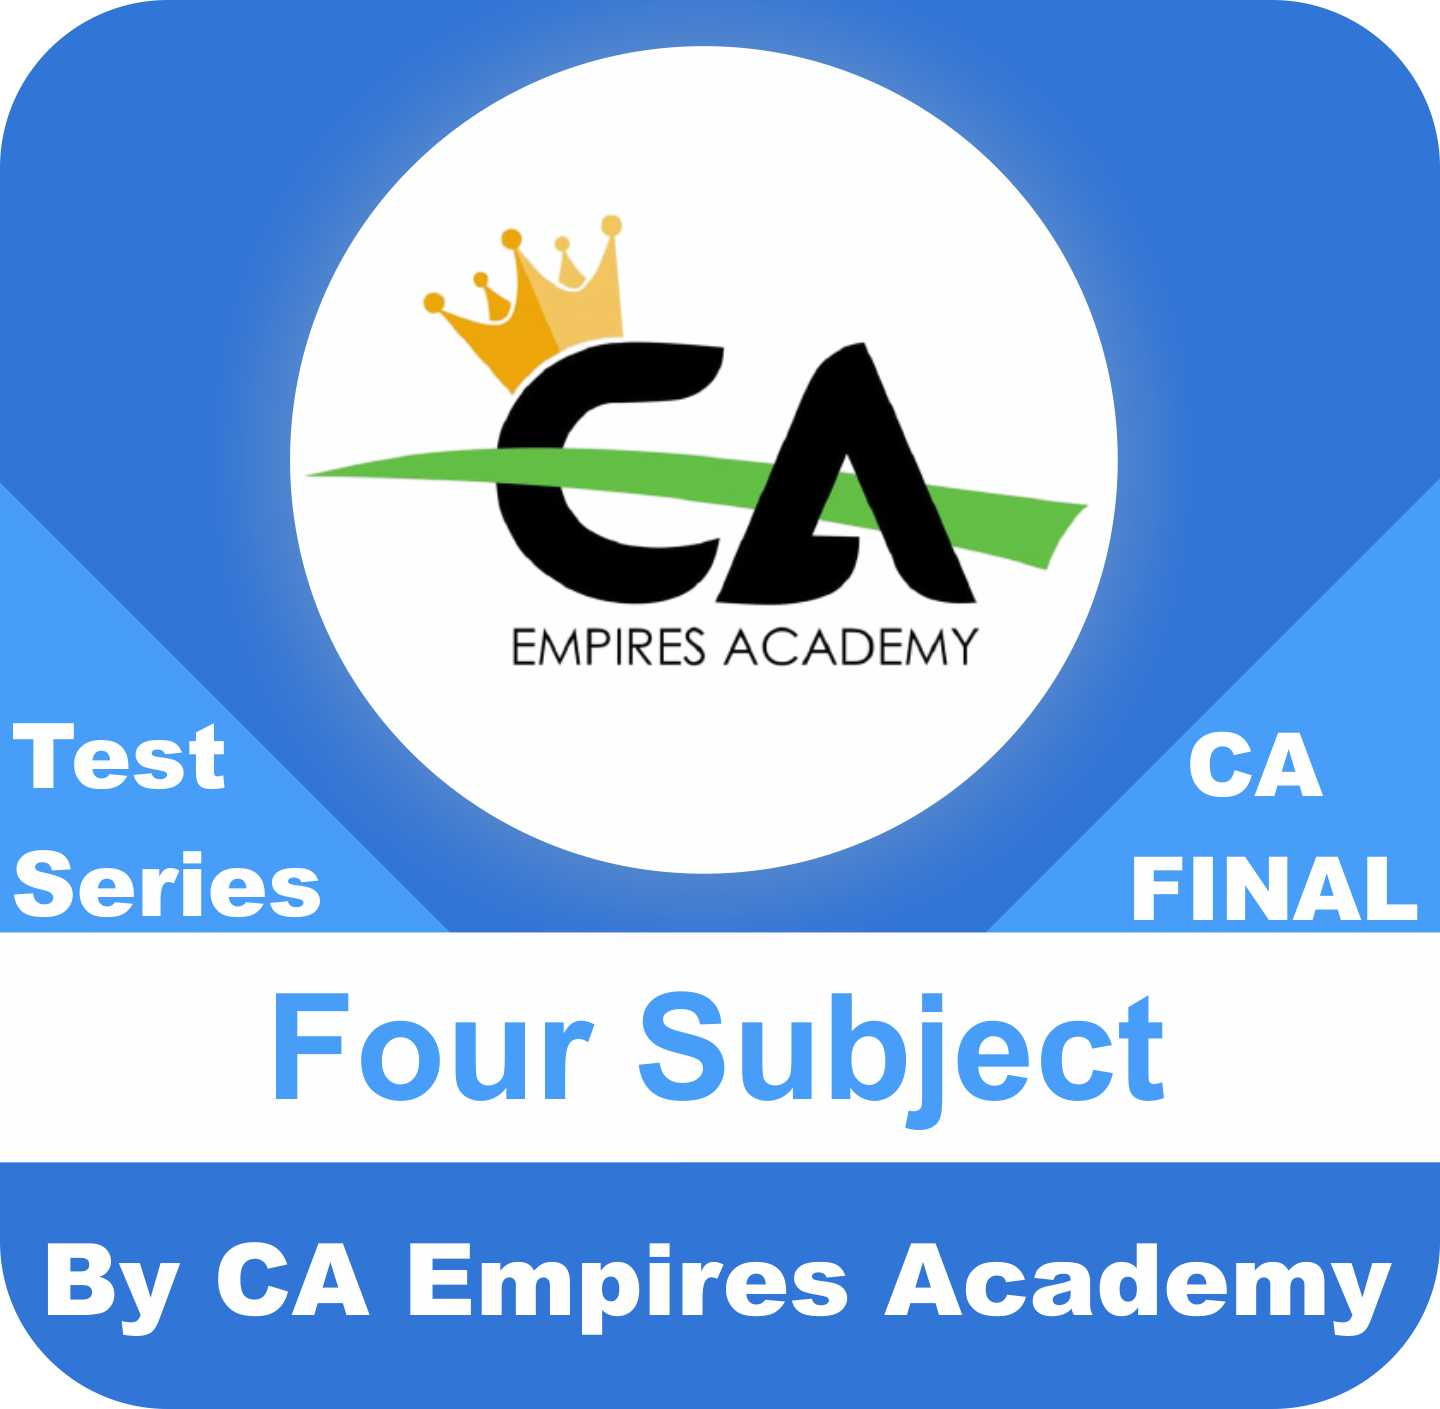 Any Four Subject Test Series in Gold Plan